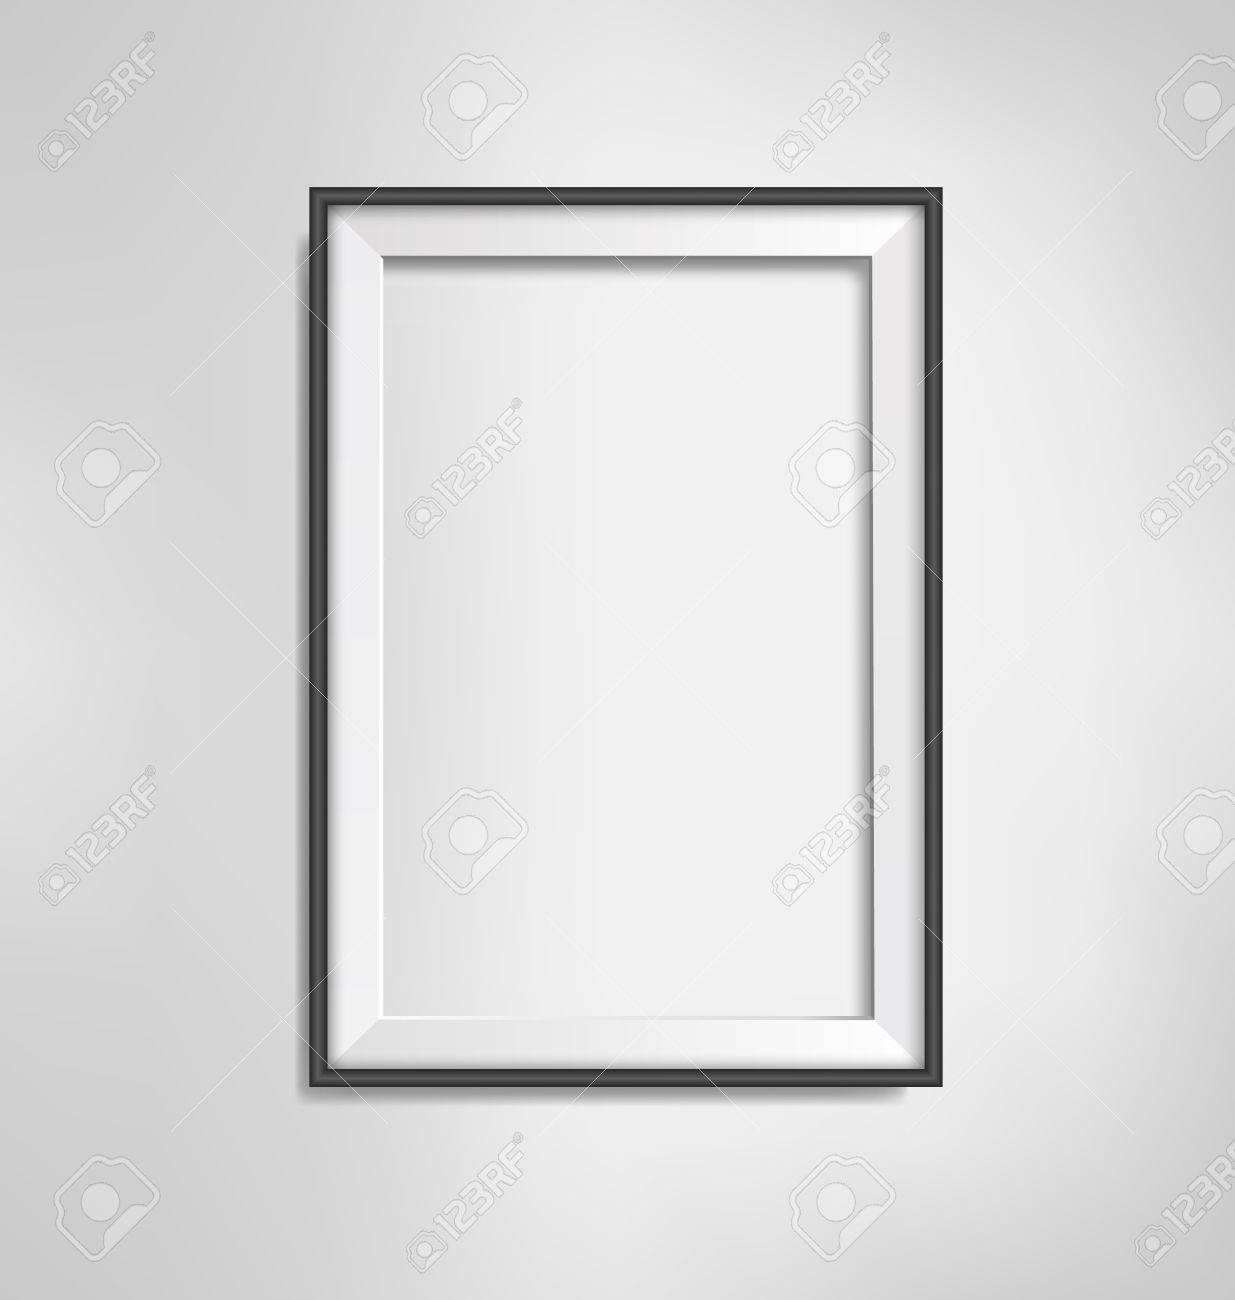 Black Simple Modern Blank Frame On Grayscale Background Royalty Free ...